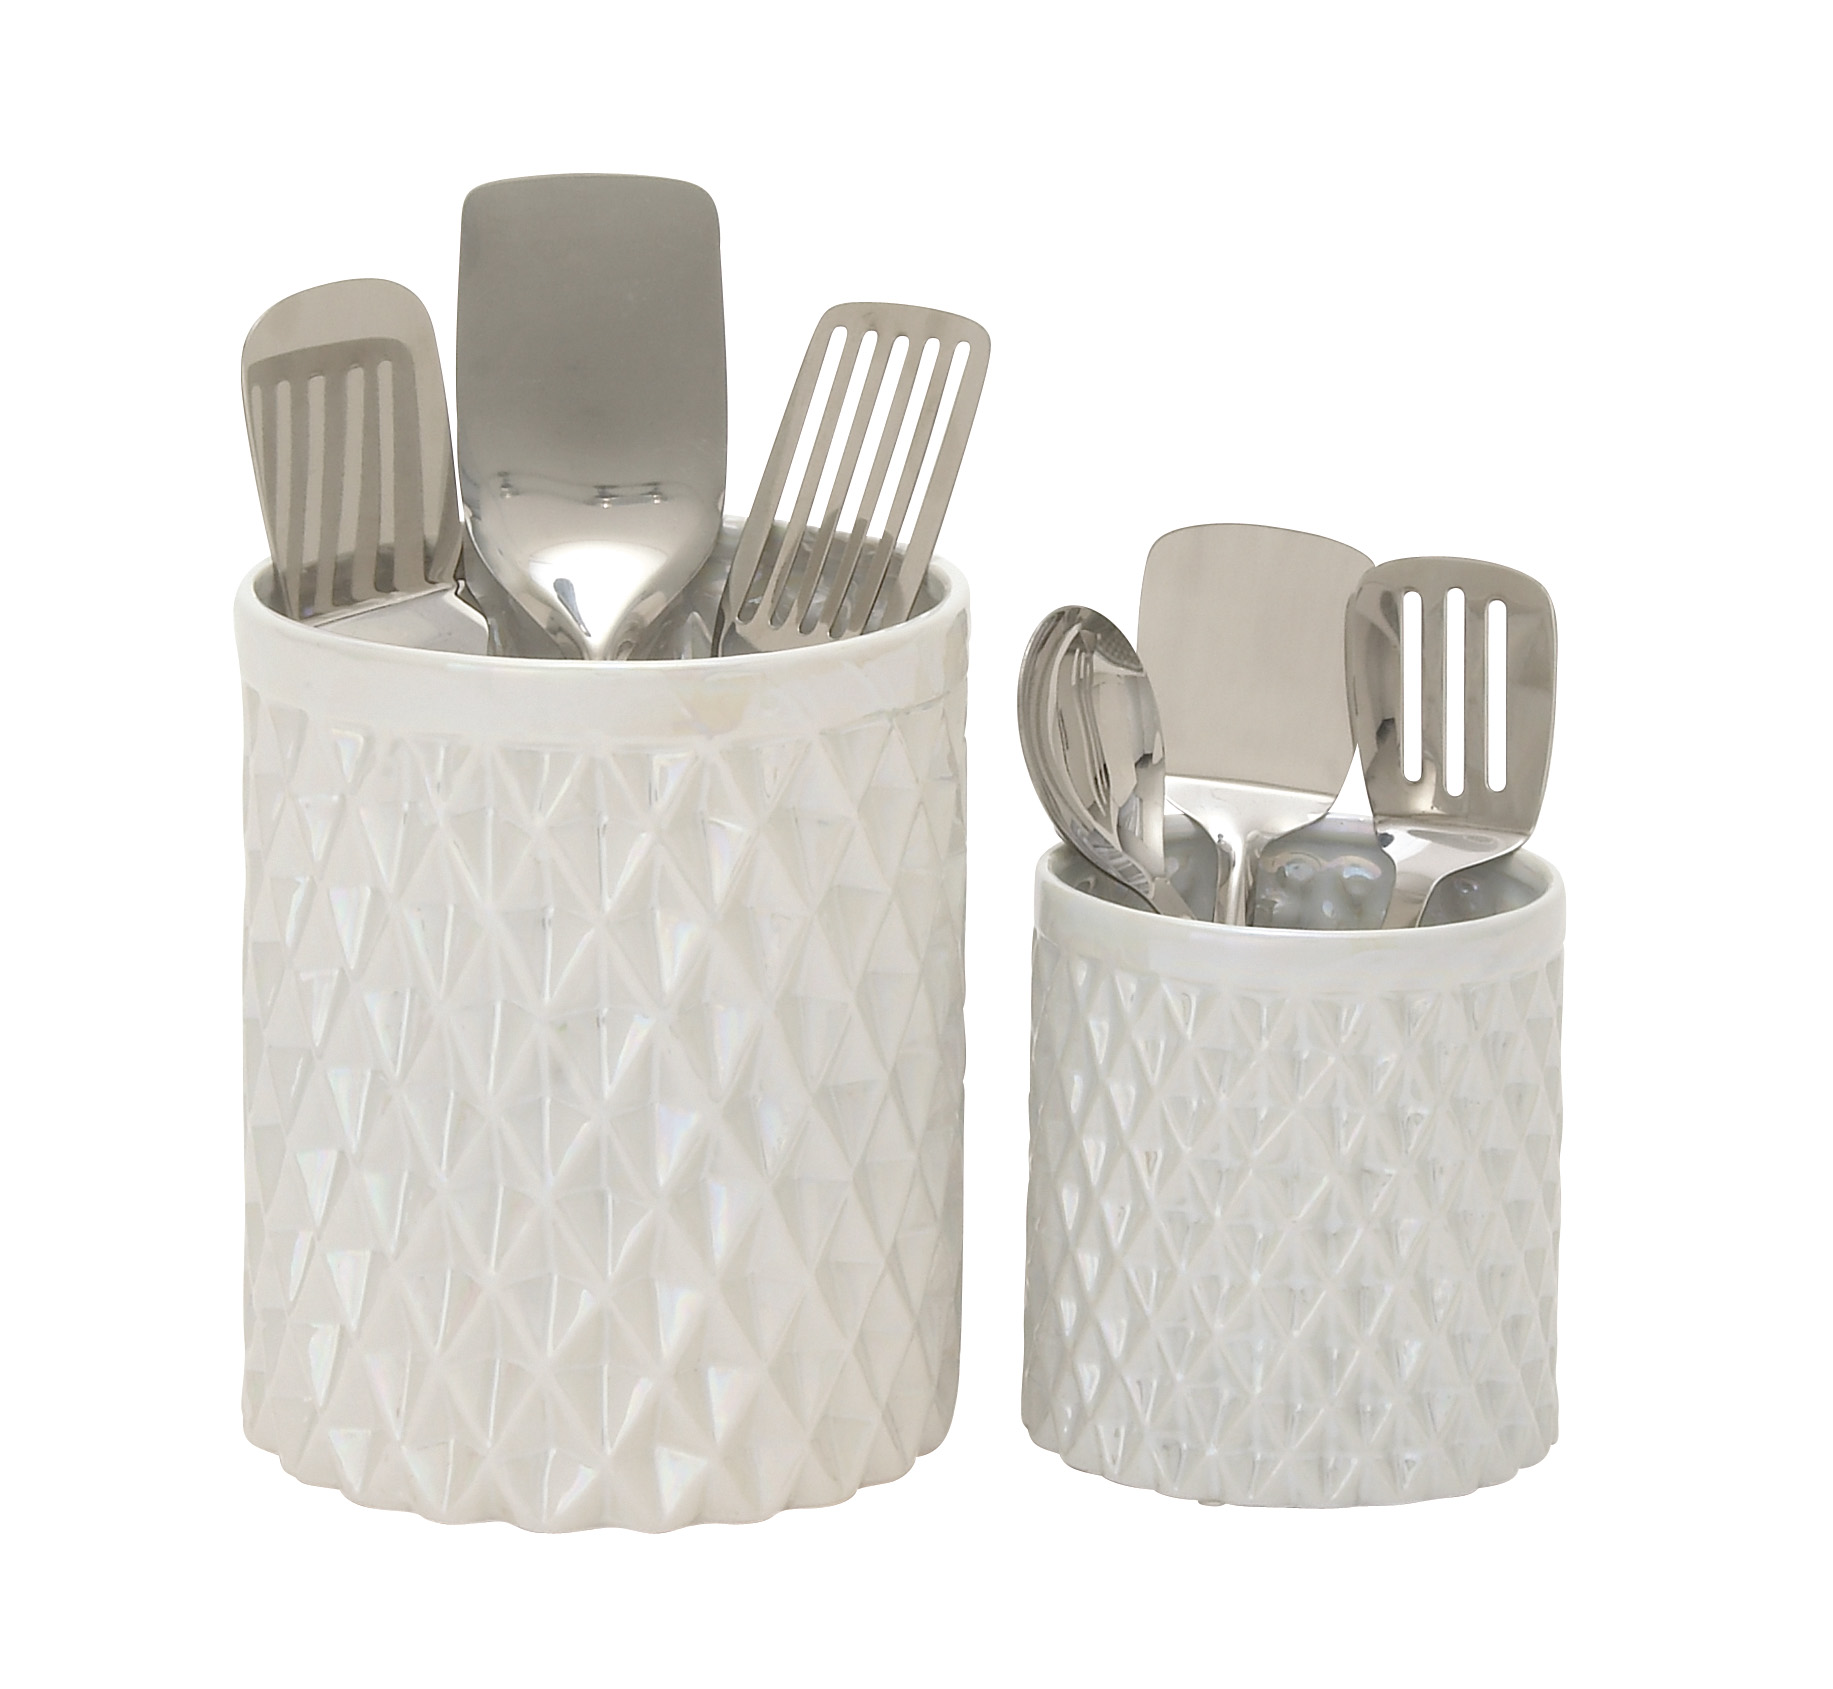 Decmode Set of Two - 6 and 9 Inch Glam-Inspired Ceramic Kitchen Utensil Jars, Pearlescent white